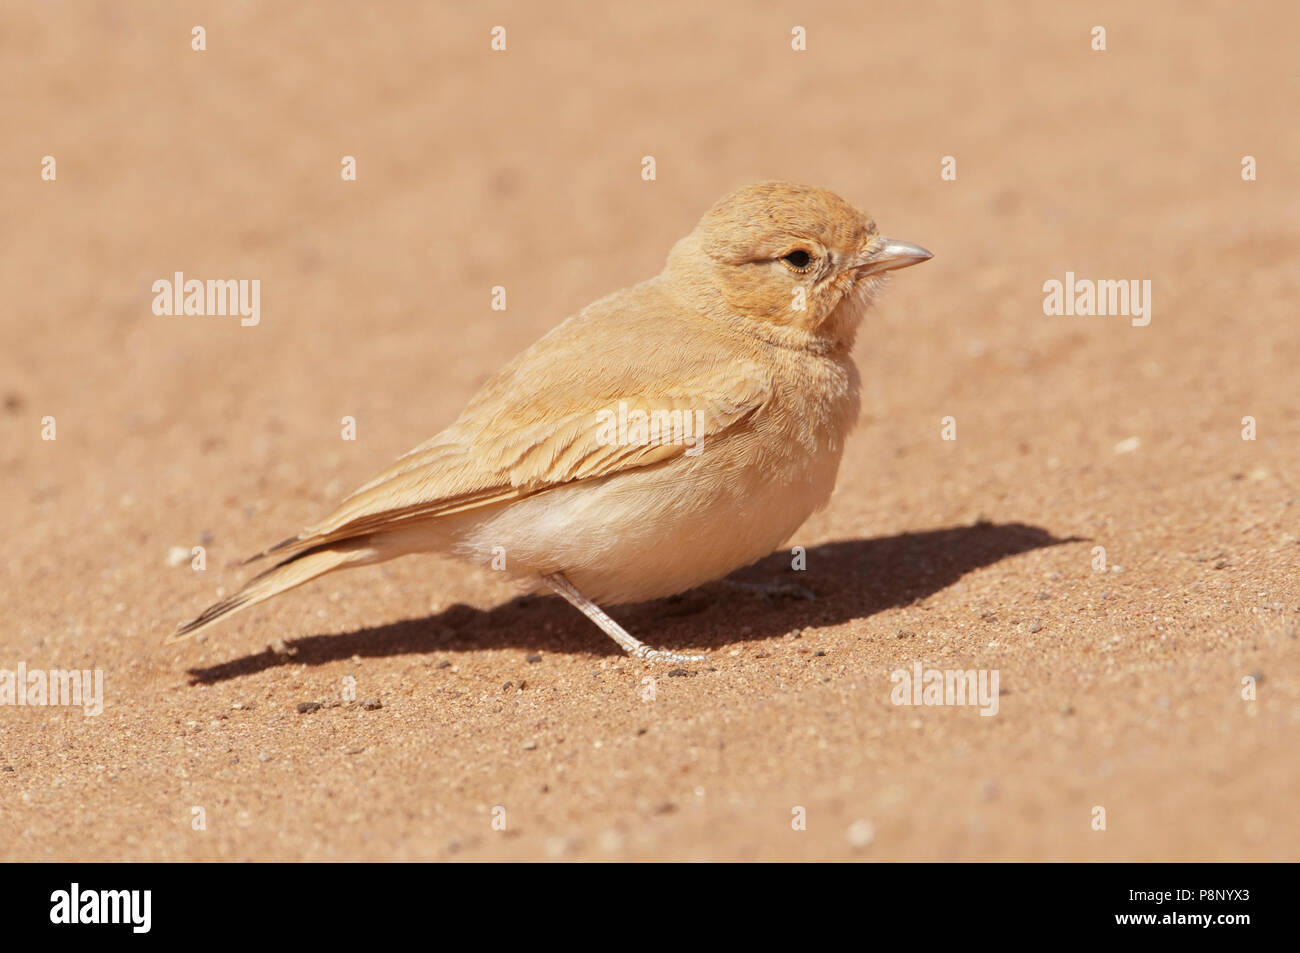 Bar-tailed Lark in the sand desert - Stock Image